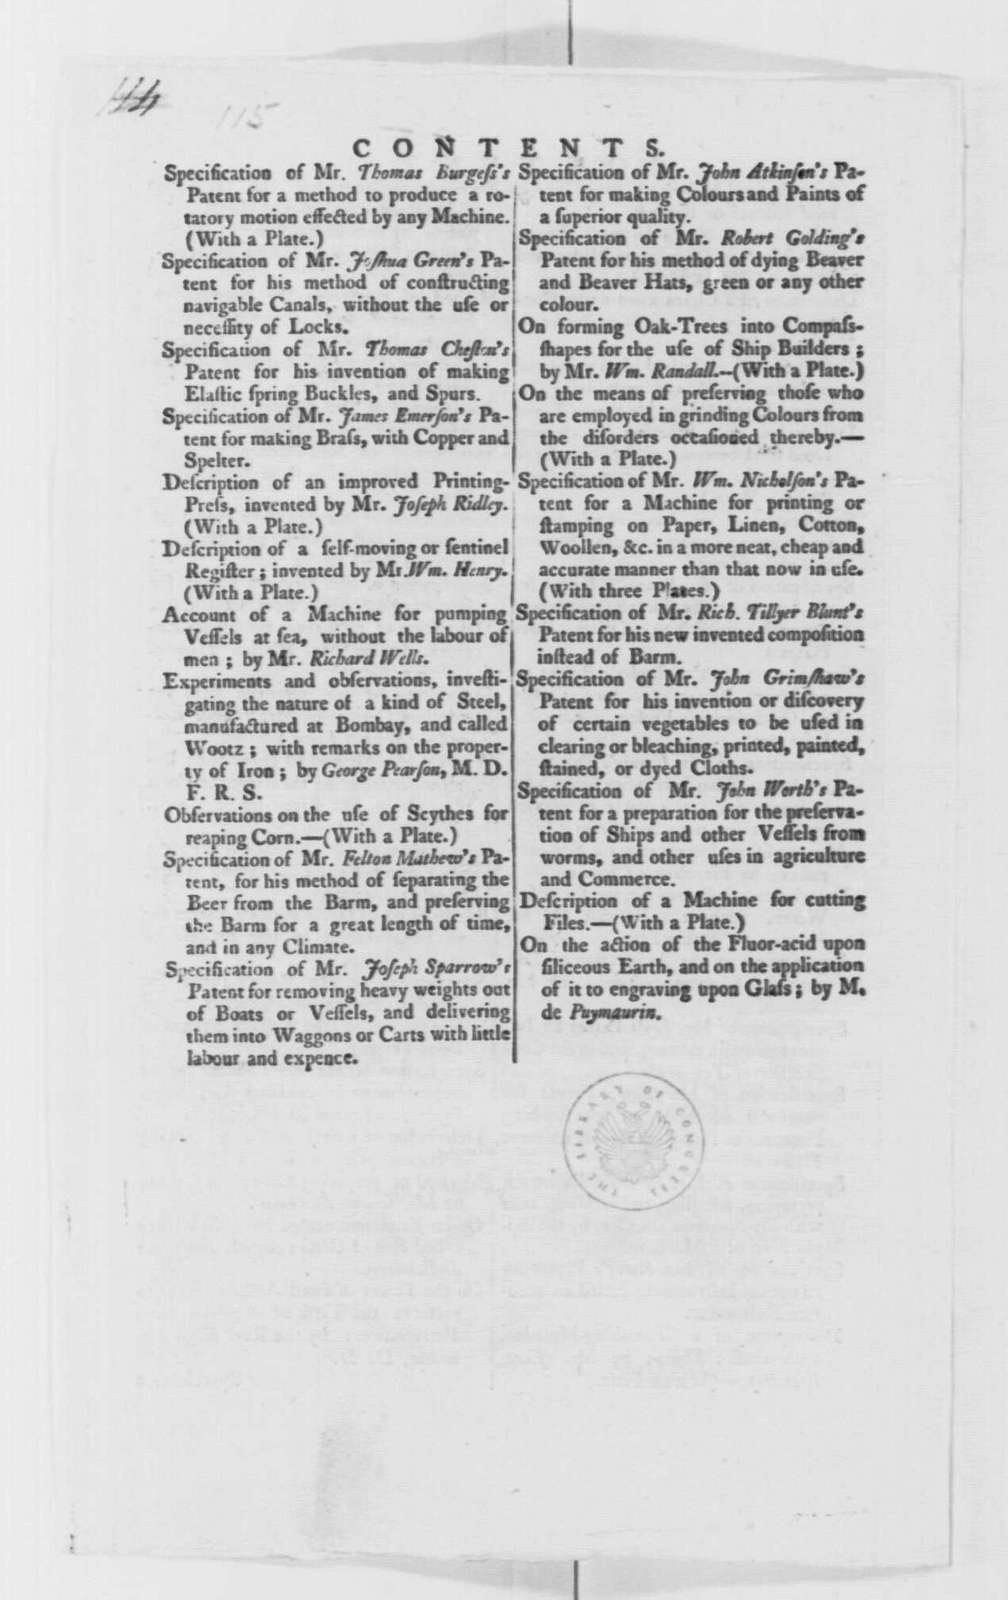 """George Washington Papers, Series 4, General Correspondence: Thomas Morton Bates to George Washington, November 4, 1796, with Pamphlet, """"The Repertory of Arts and Manufactures..."""""""